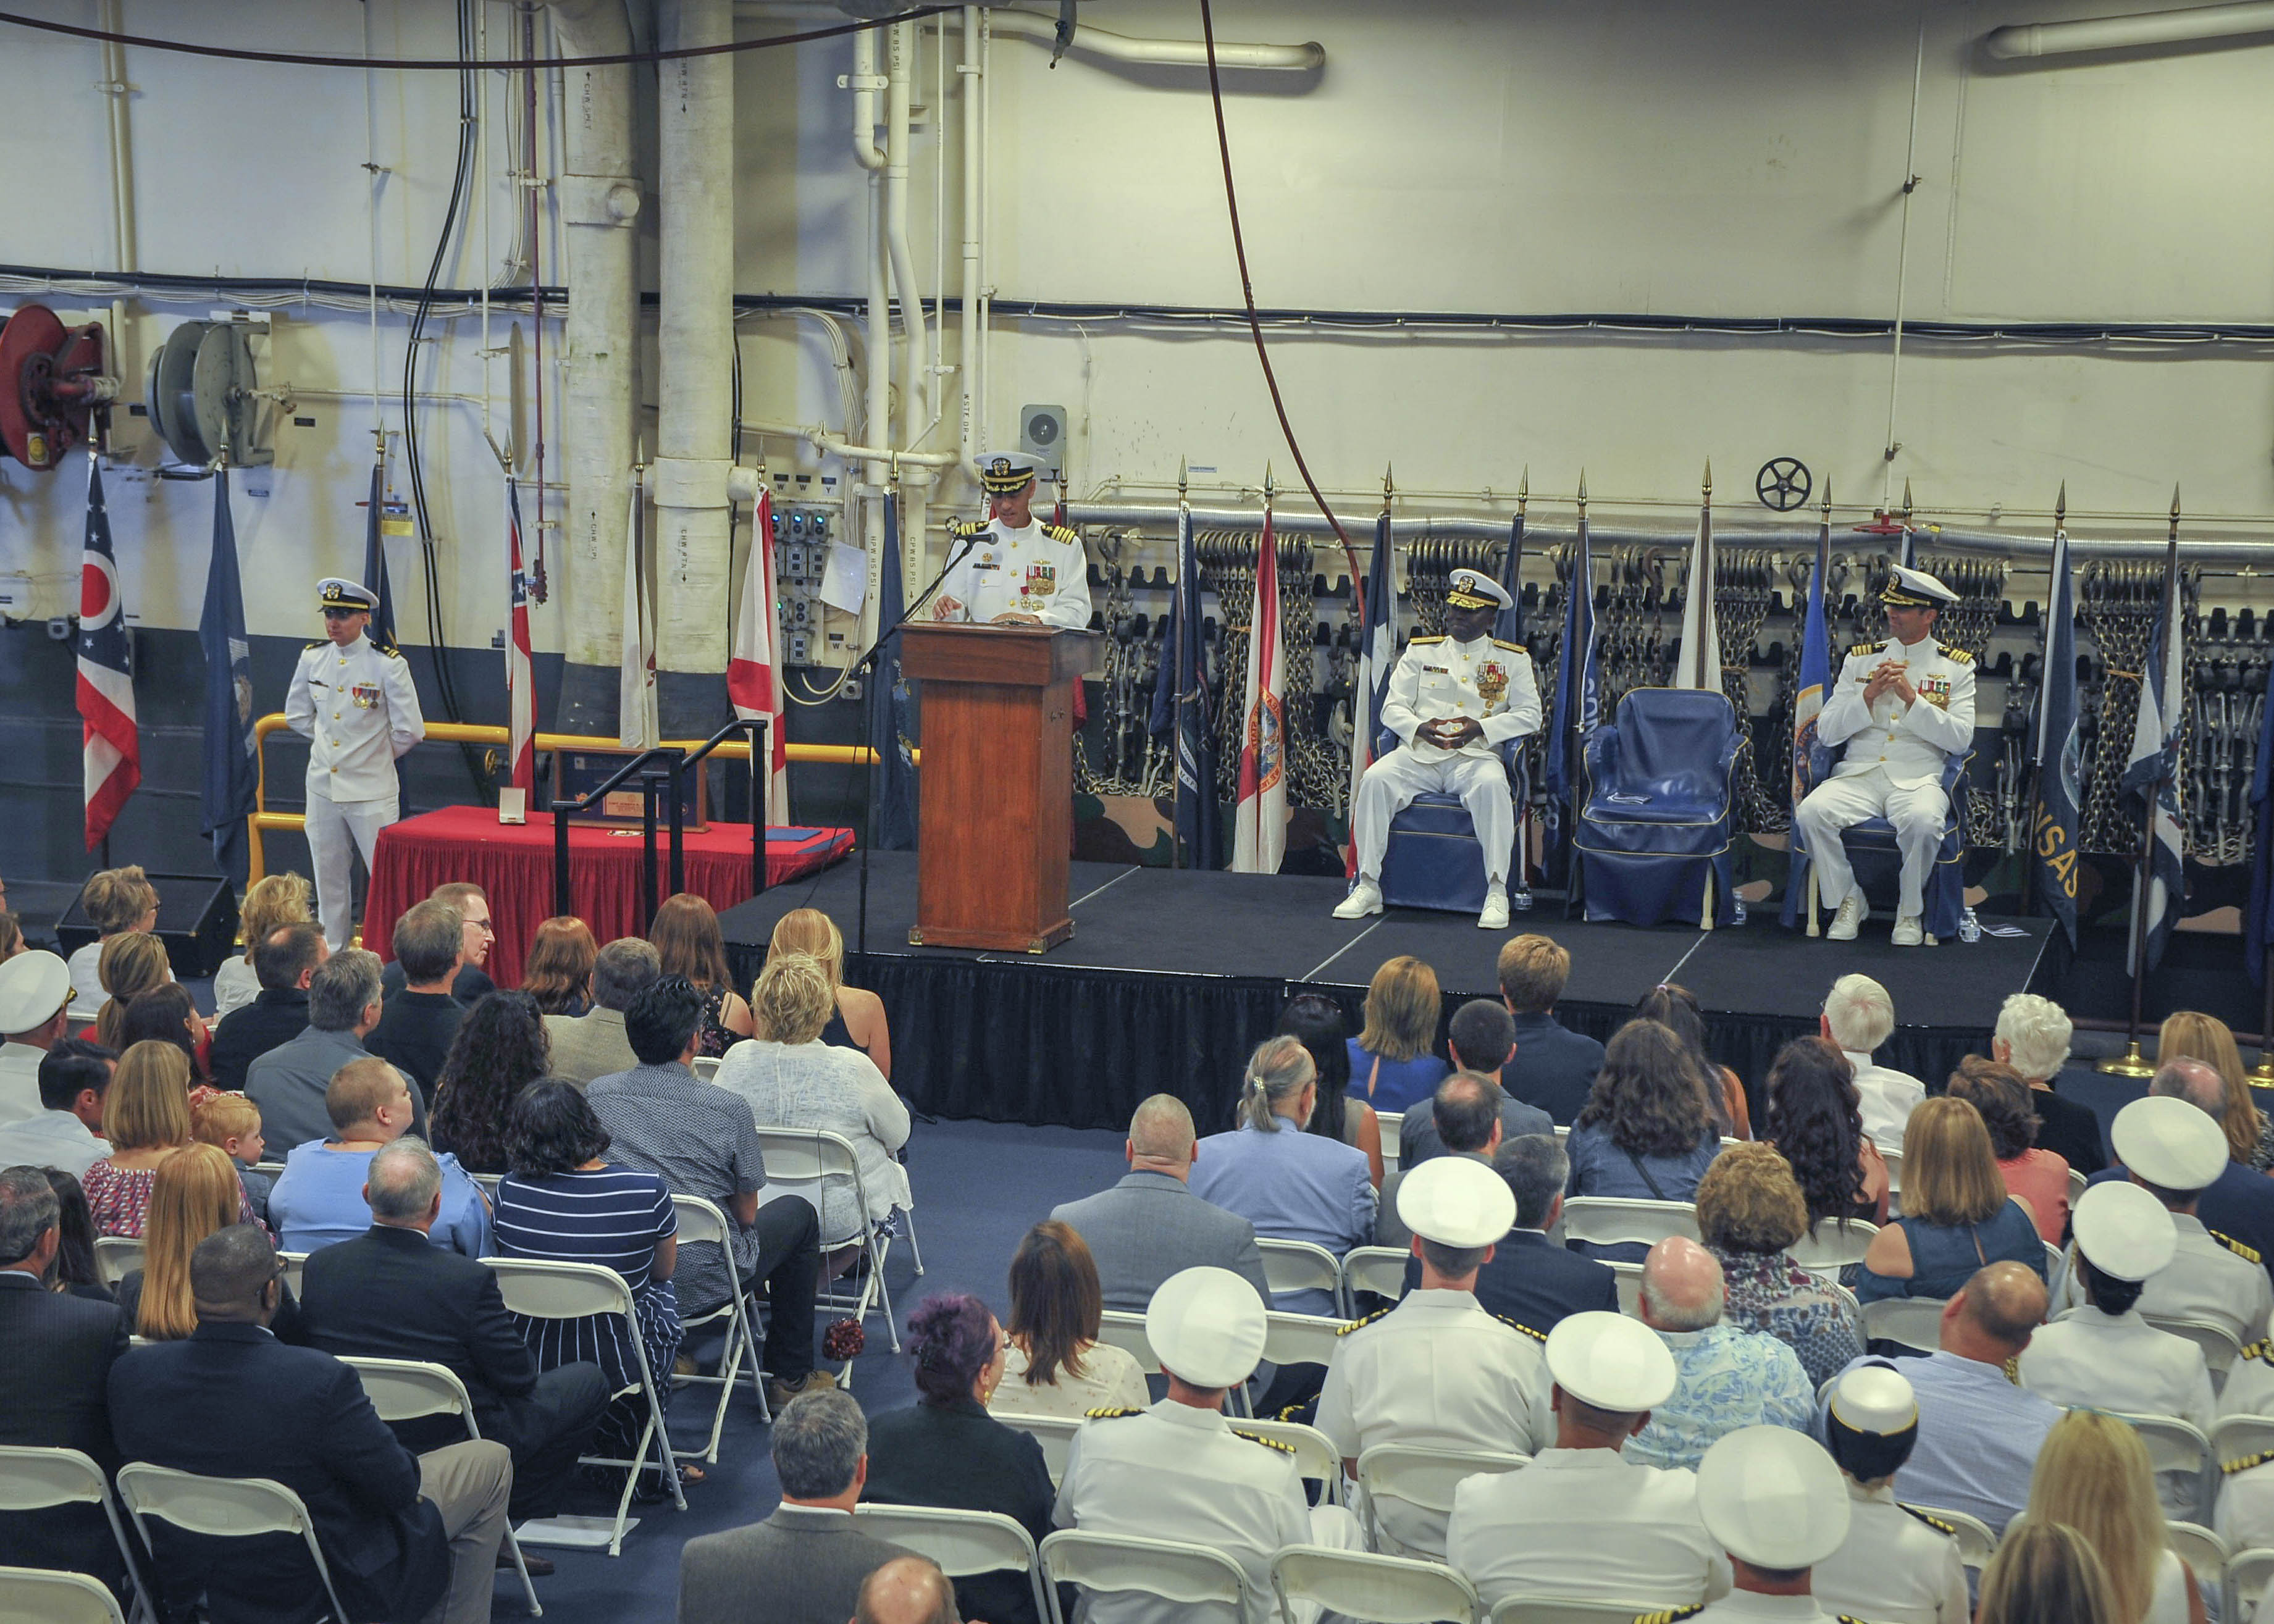 SAN DIEGO (NNS) — The amphibious assault ship USS America (LHA 6) held a change of command ceremony while moored at Naval Base San Diego, June 8.